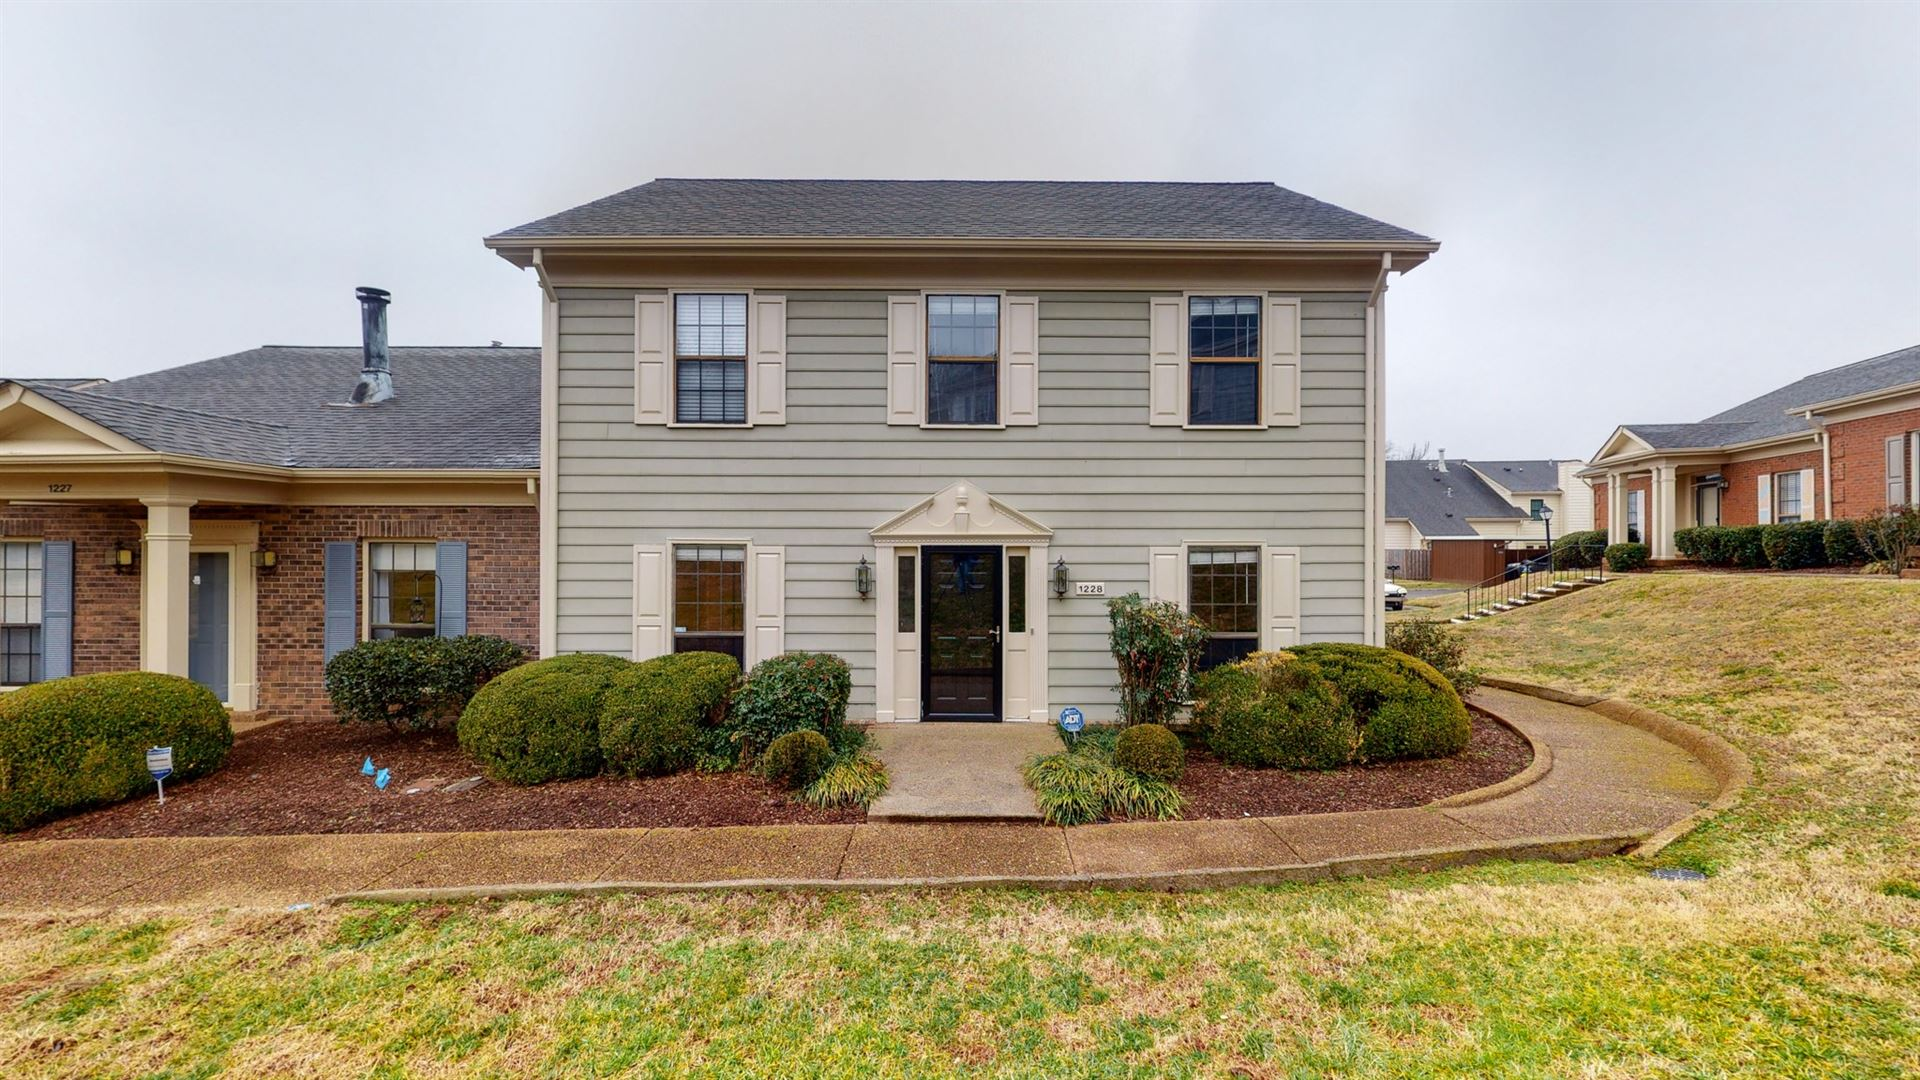 1228 Brentwood Point, Brentwood, TN 37027 - MLS#: 2229680